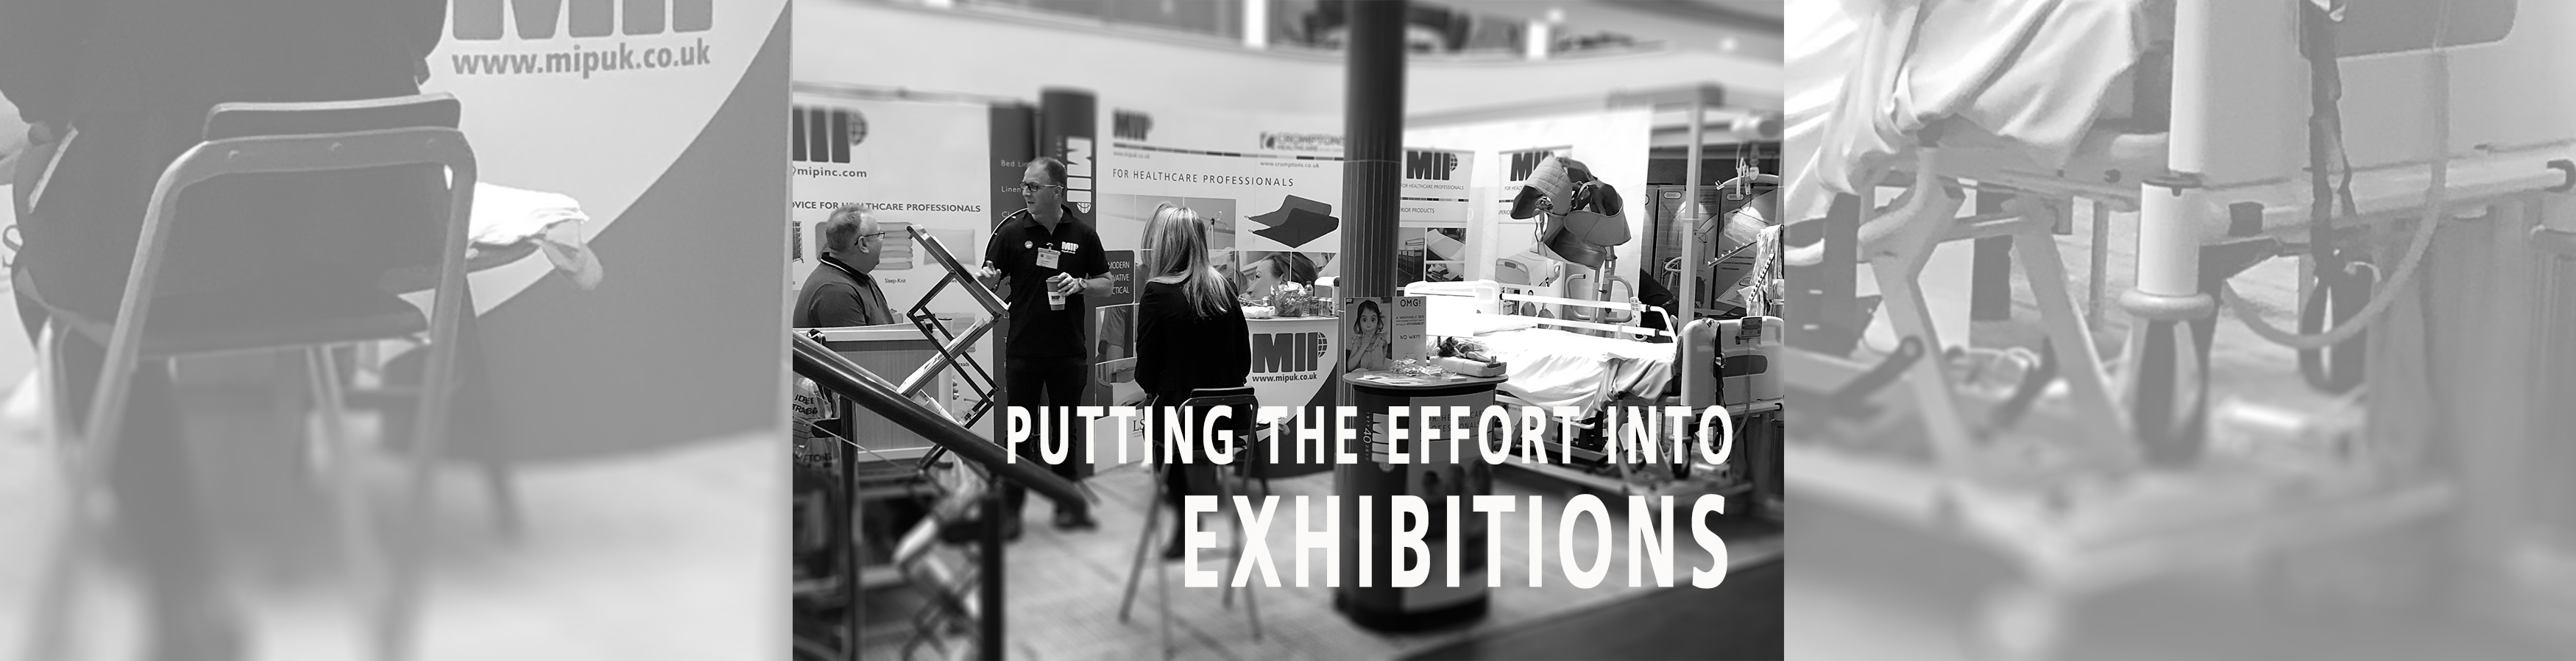 Putting the effort into Exhibitions